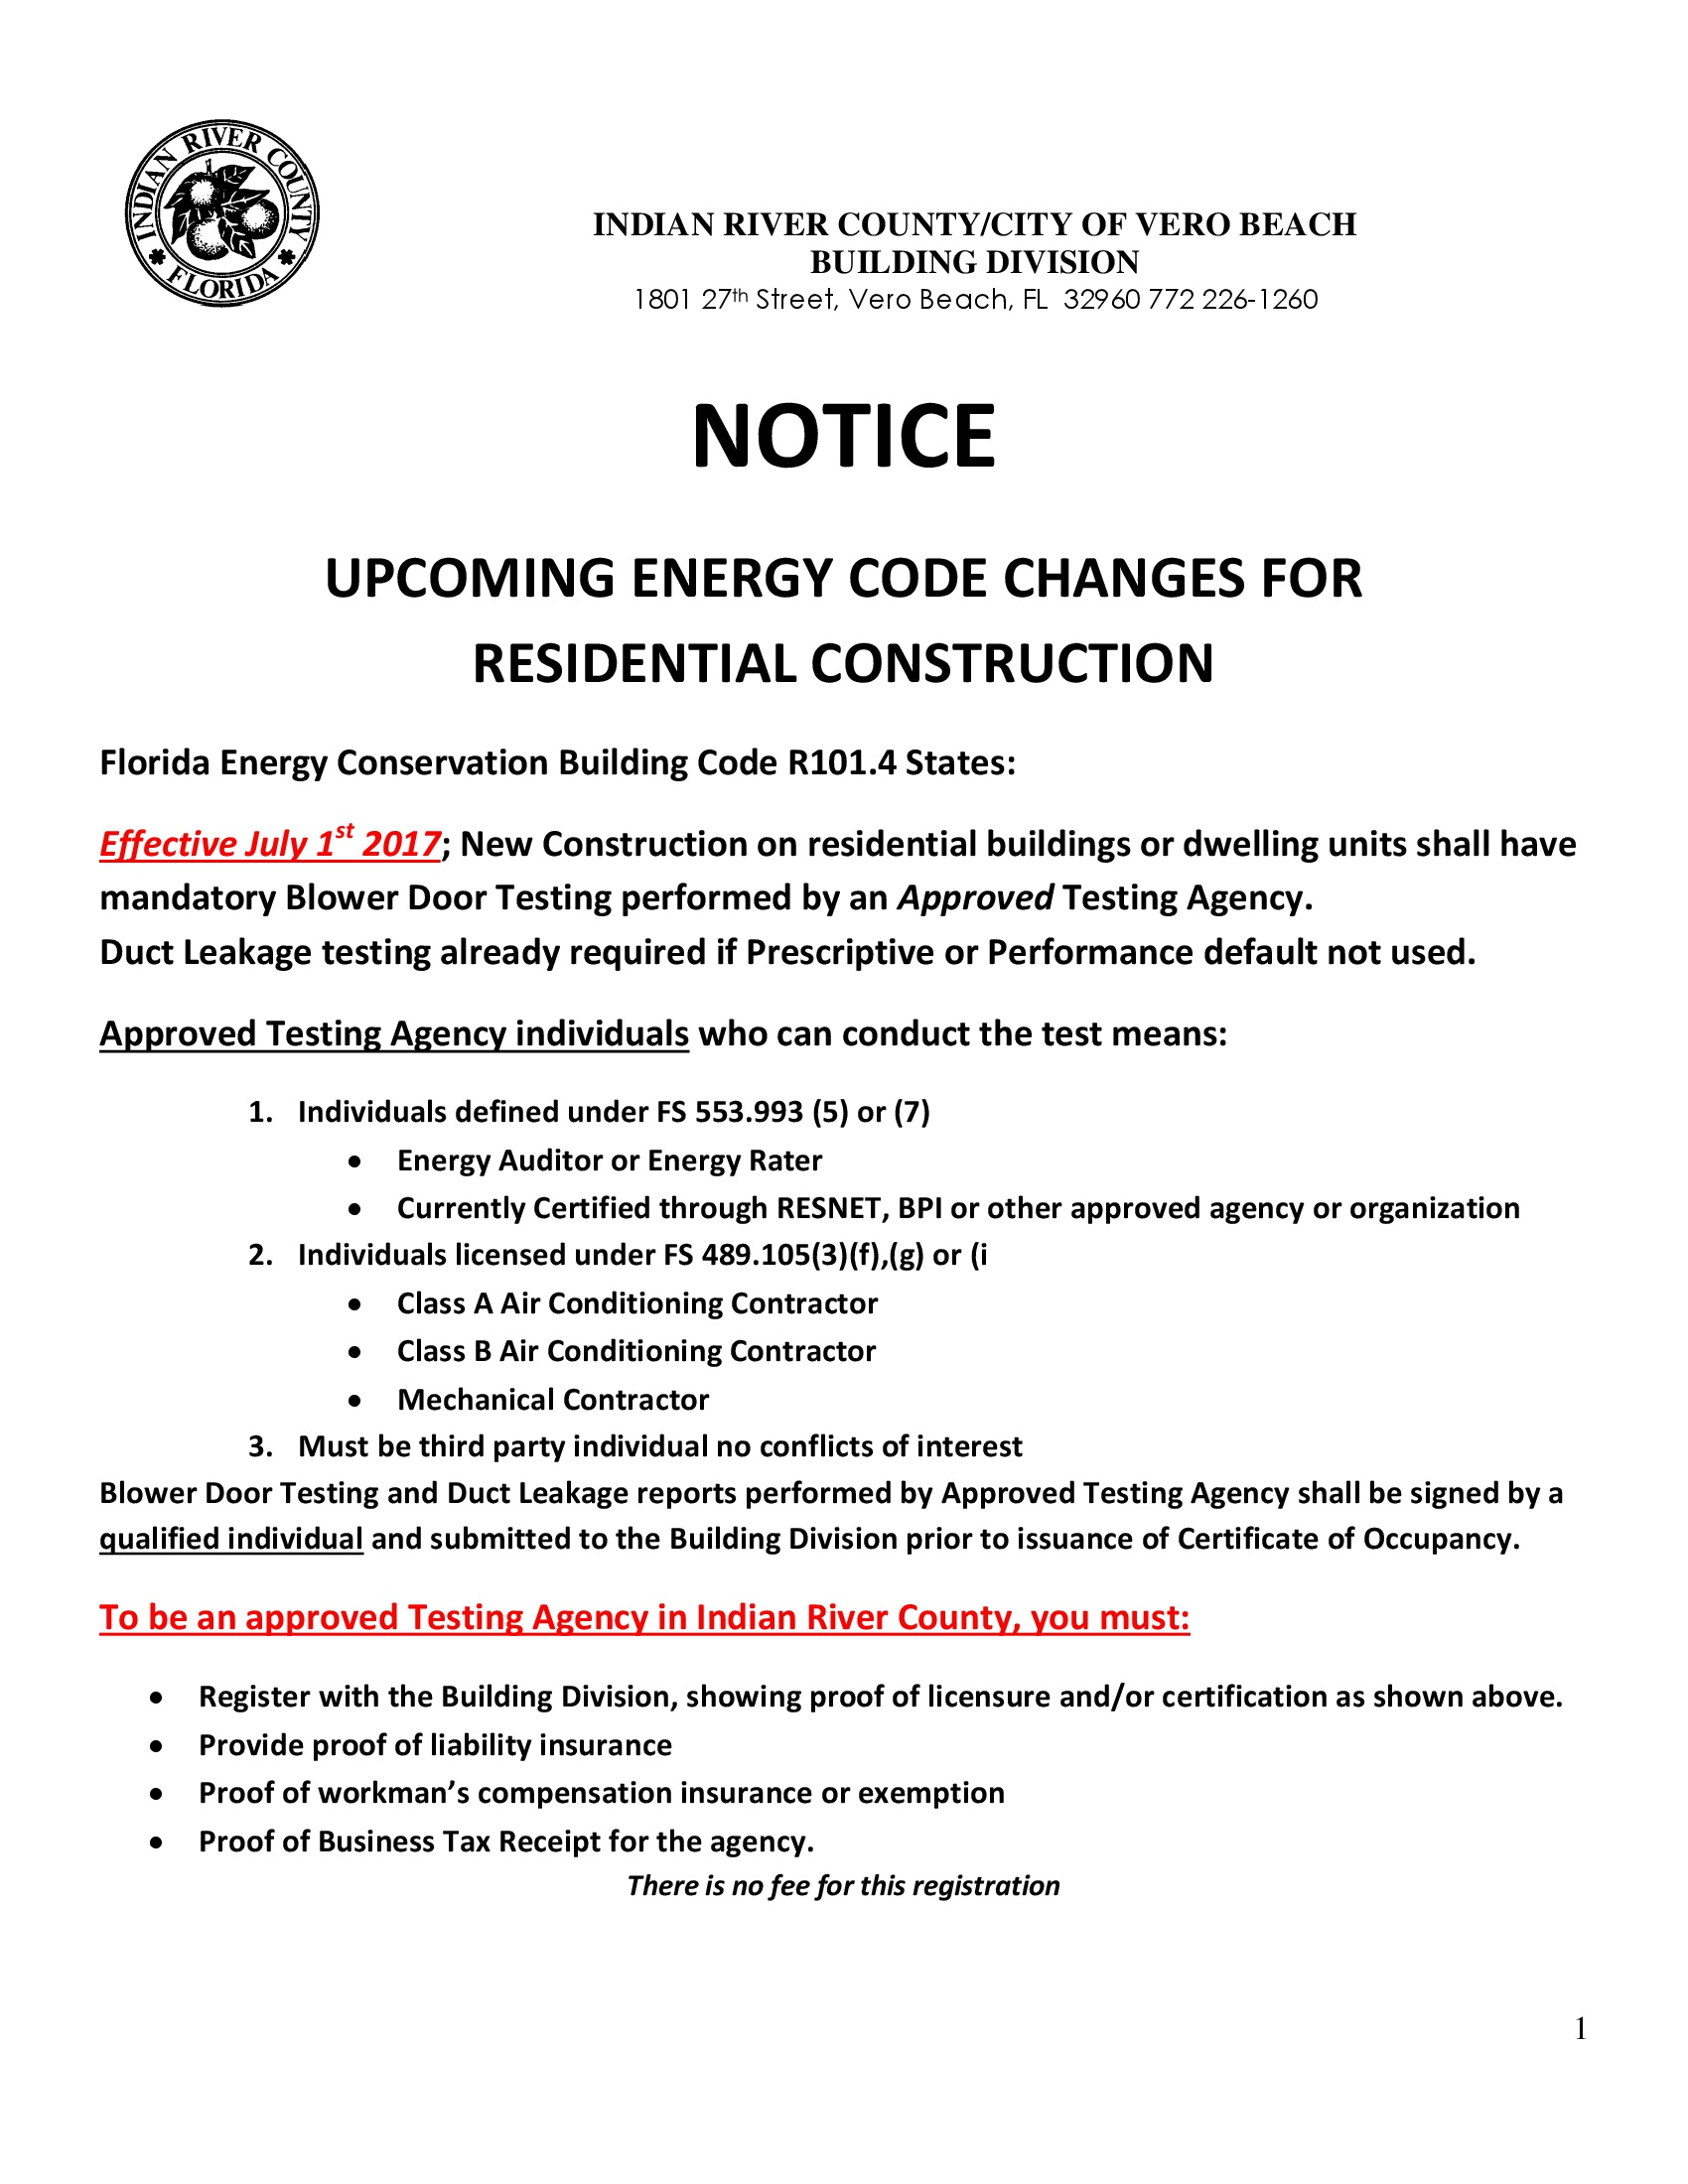 NOTICE  Upcoming Energy Code Changes for  Residential Construction